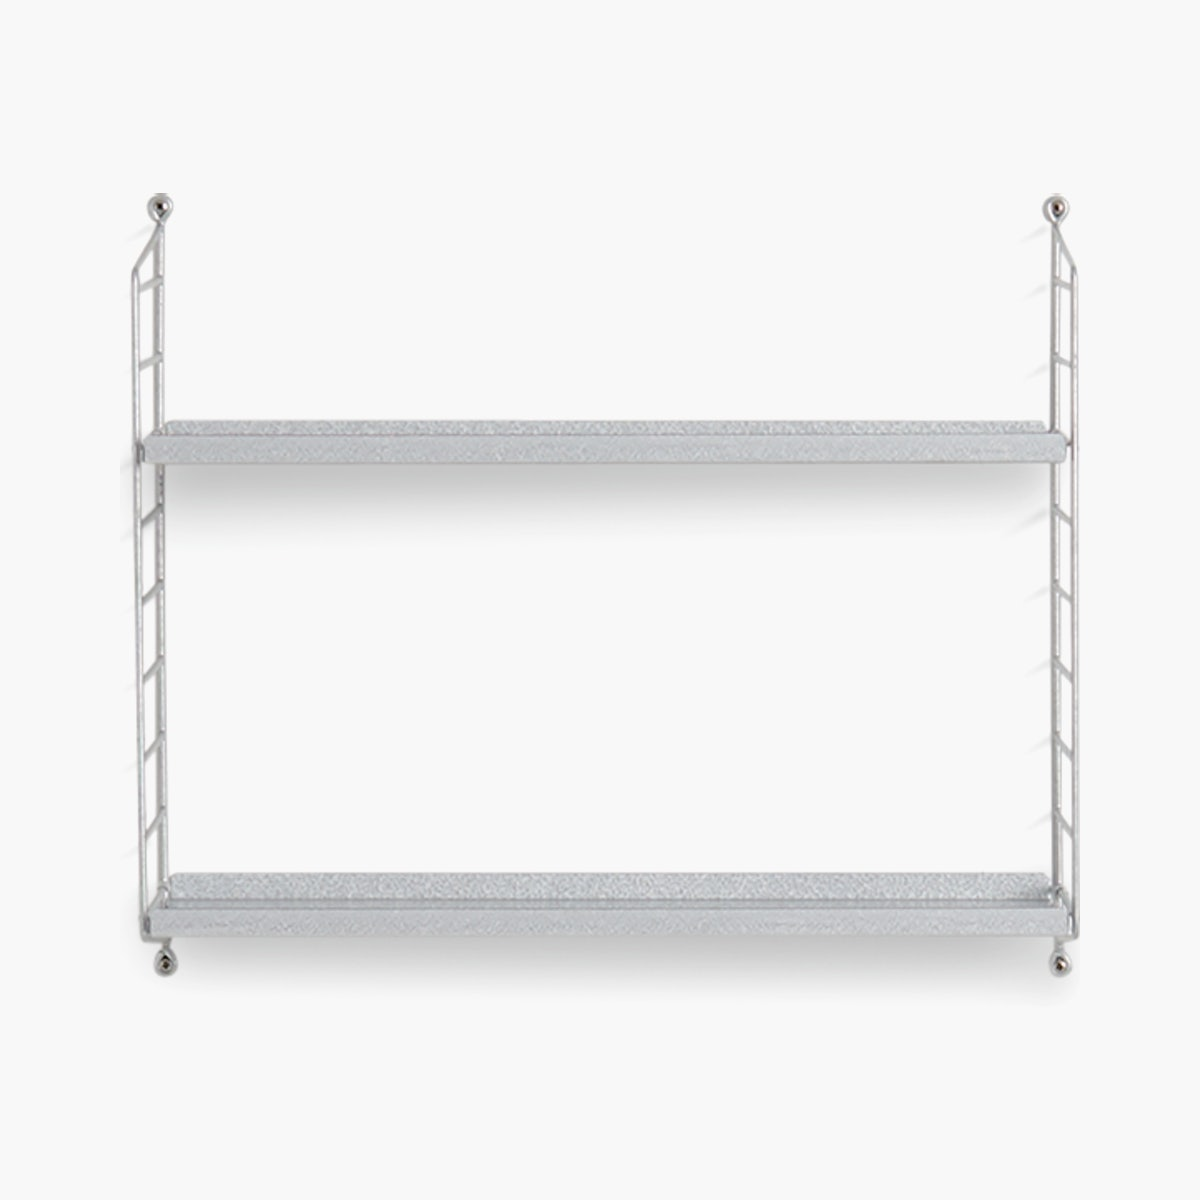 String Galvanized Wall Shelving